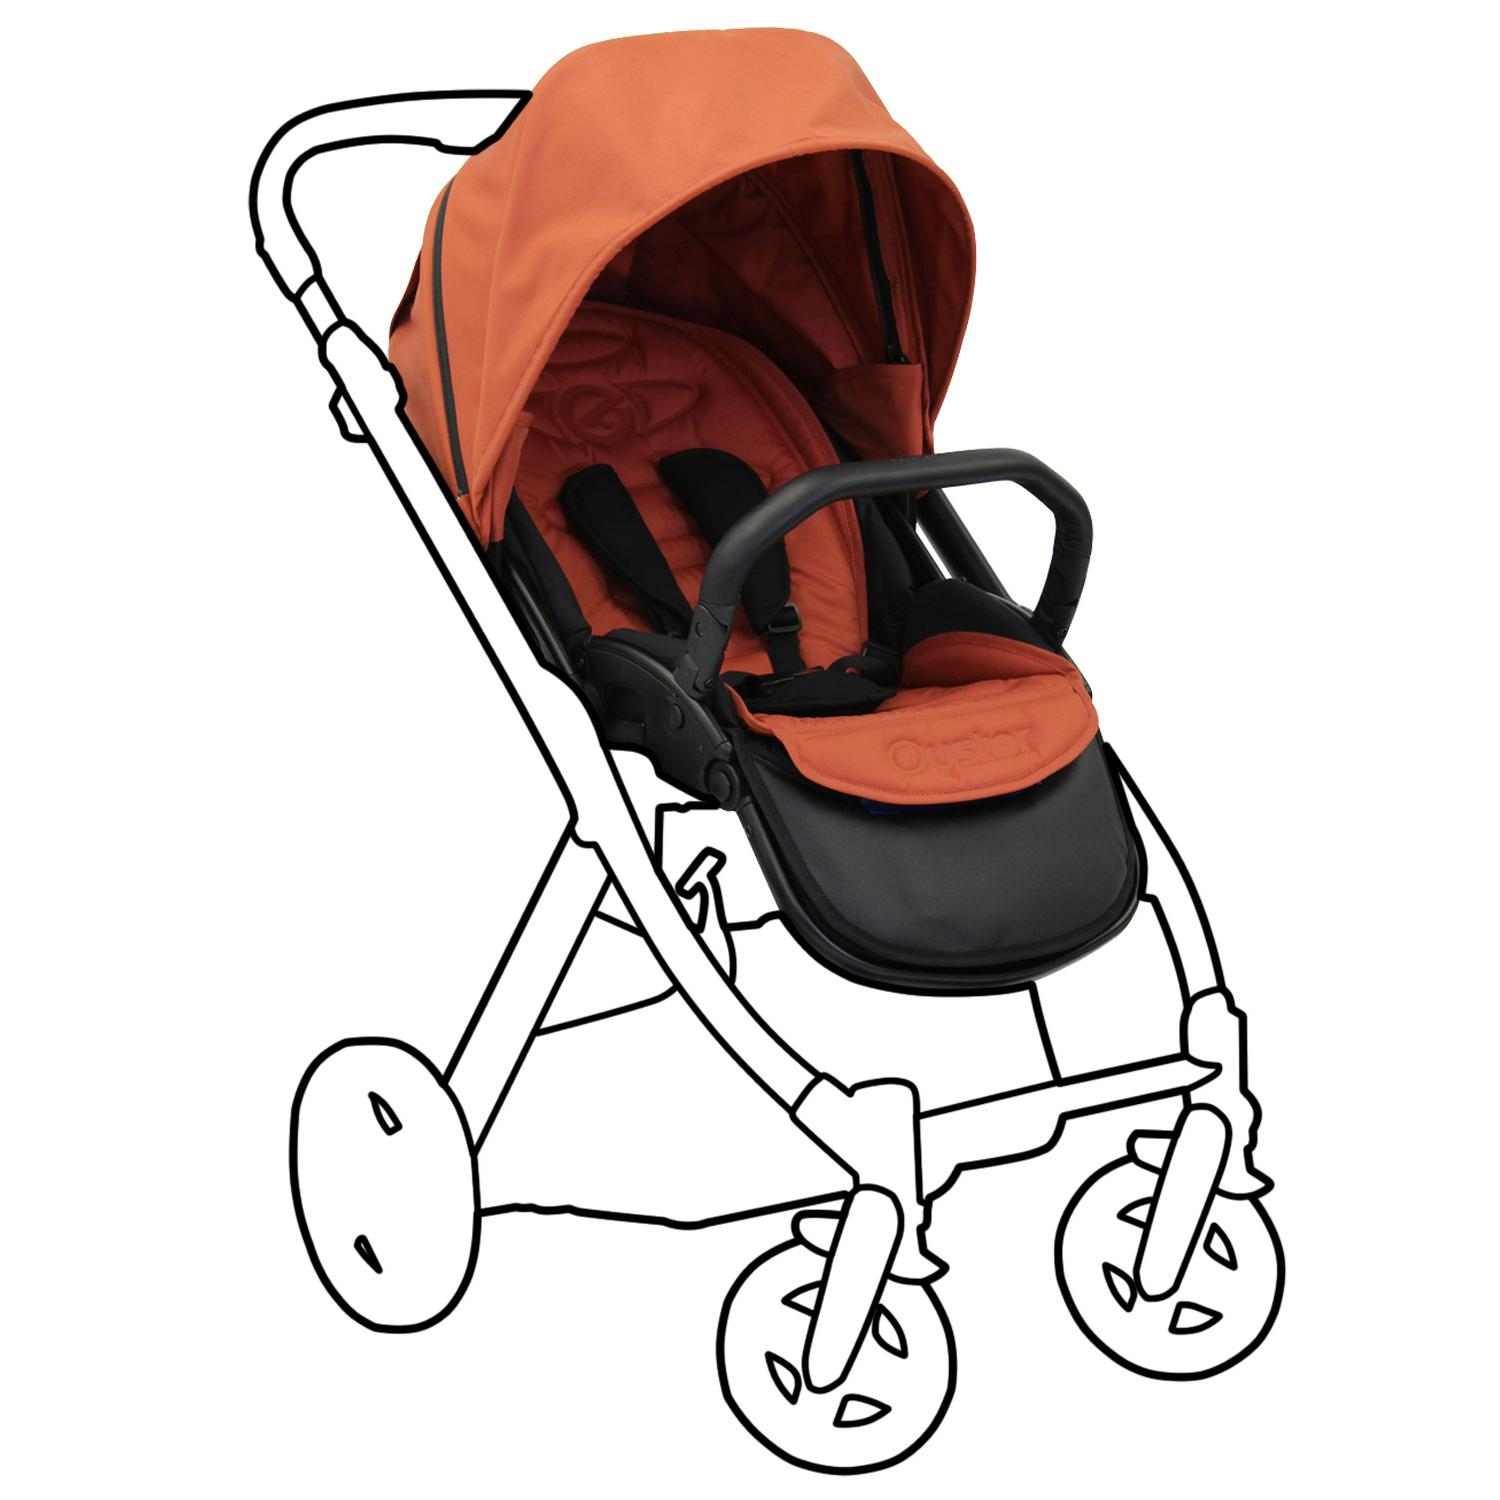 Babystyle Oyster Stroller Colour Pack Spice Kiddicare.com.